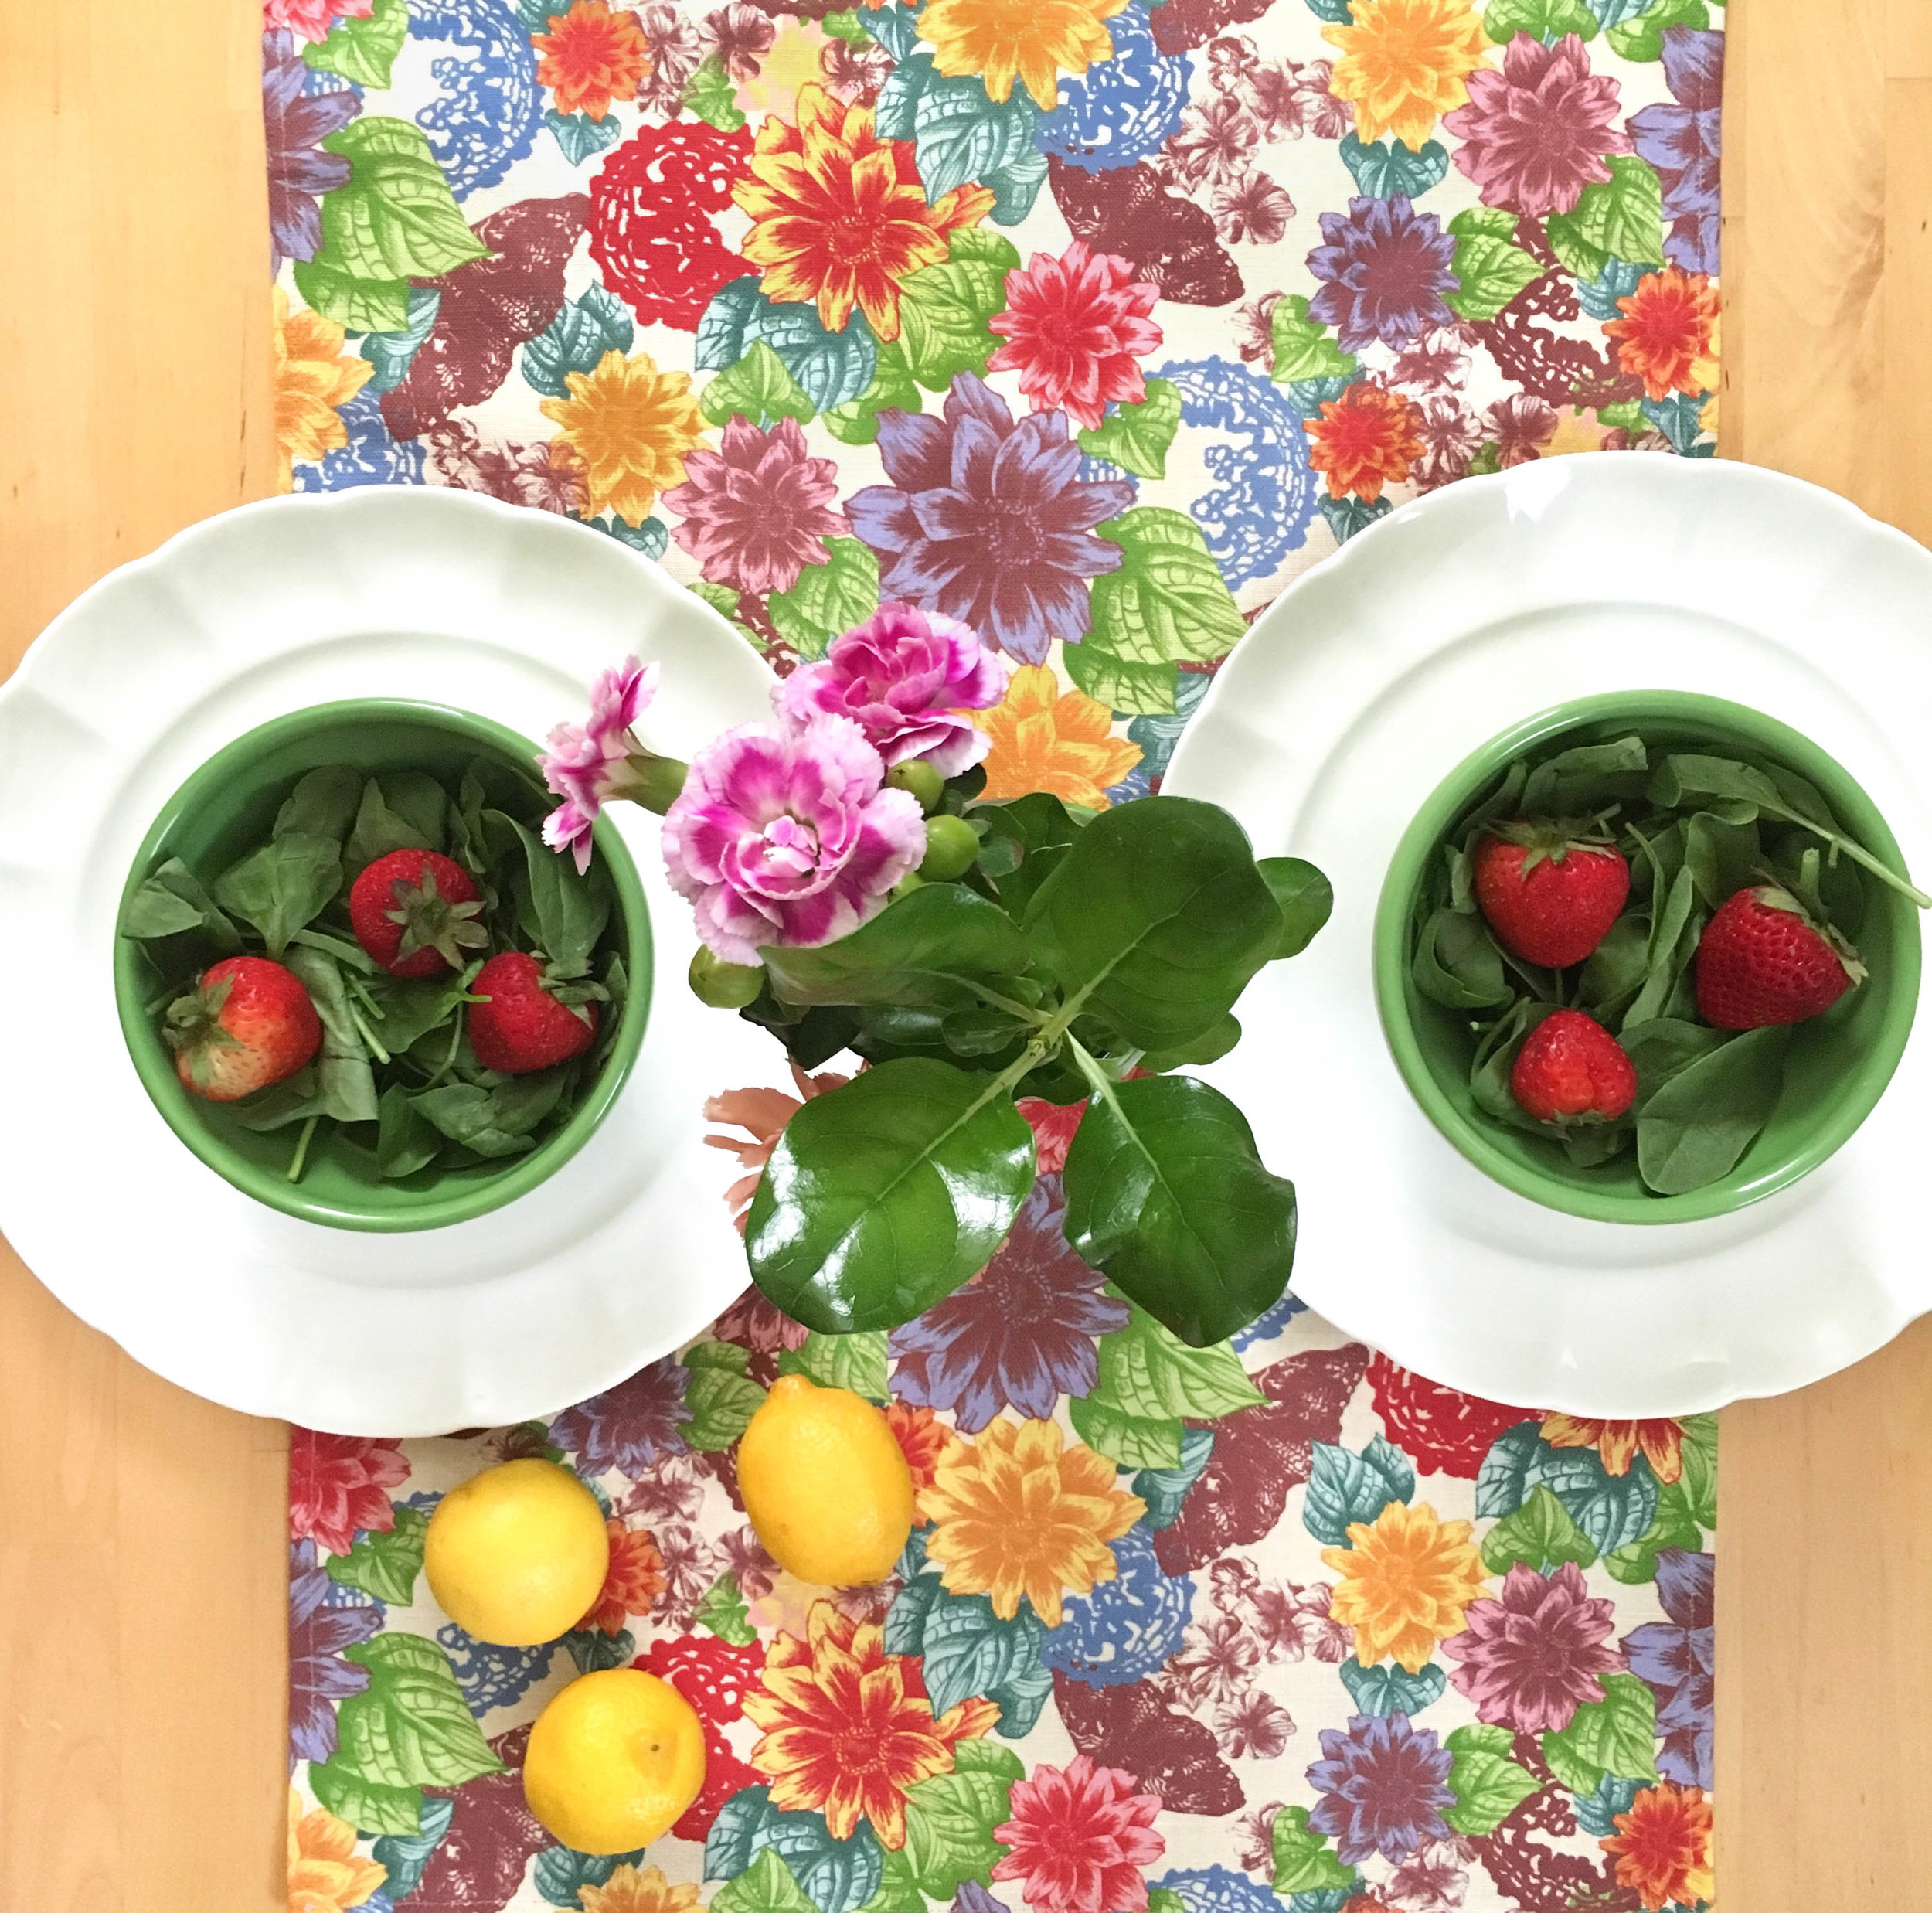 Unique and colorful Zale Table Runner in place setting with flowers, strawberries, and lemons